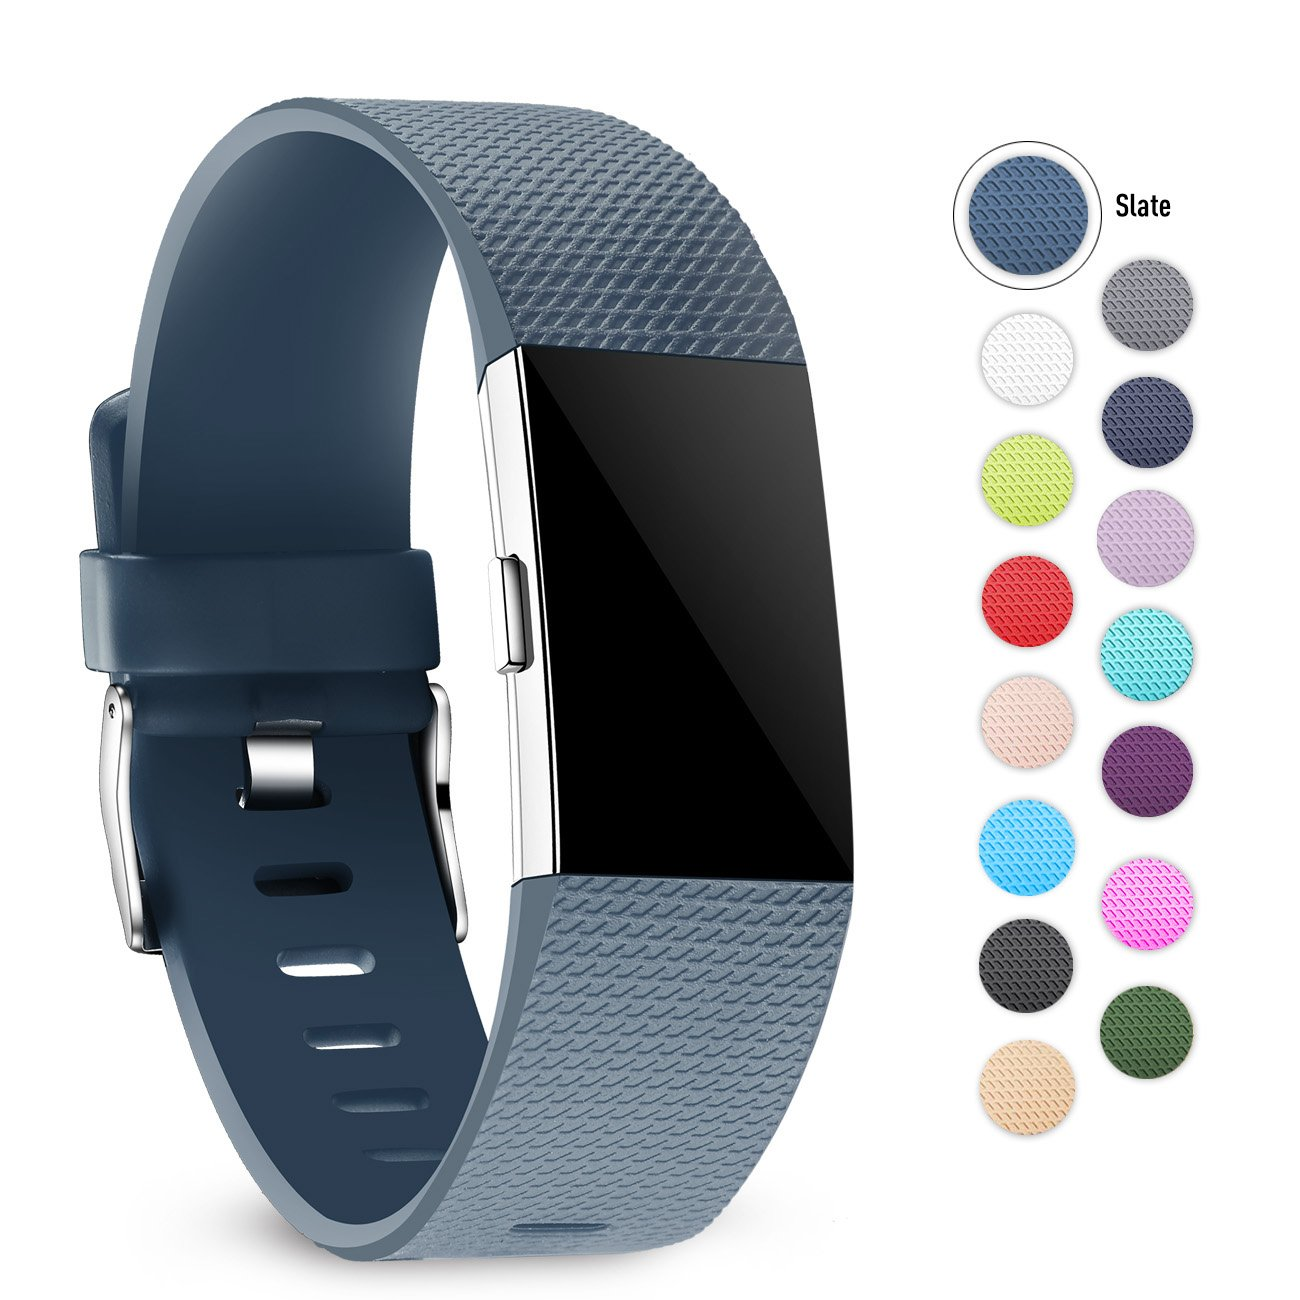 crefort for Fitbit Charge 2バンド、交換用アクセサリーWristbands for Fitbit Charge HR、2 Large Smallレディース、メンズ、マルチカラー B079KRMBB7 スレート Small